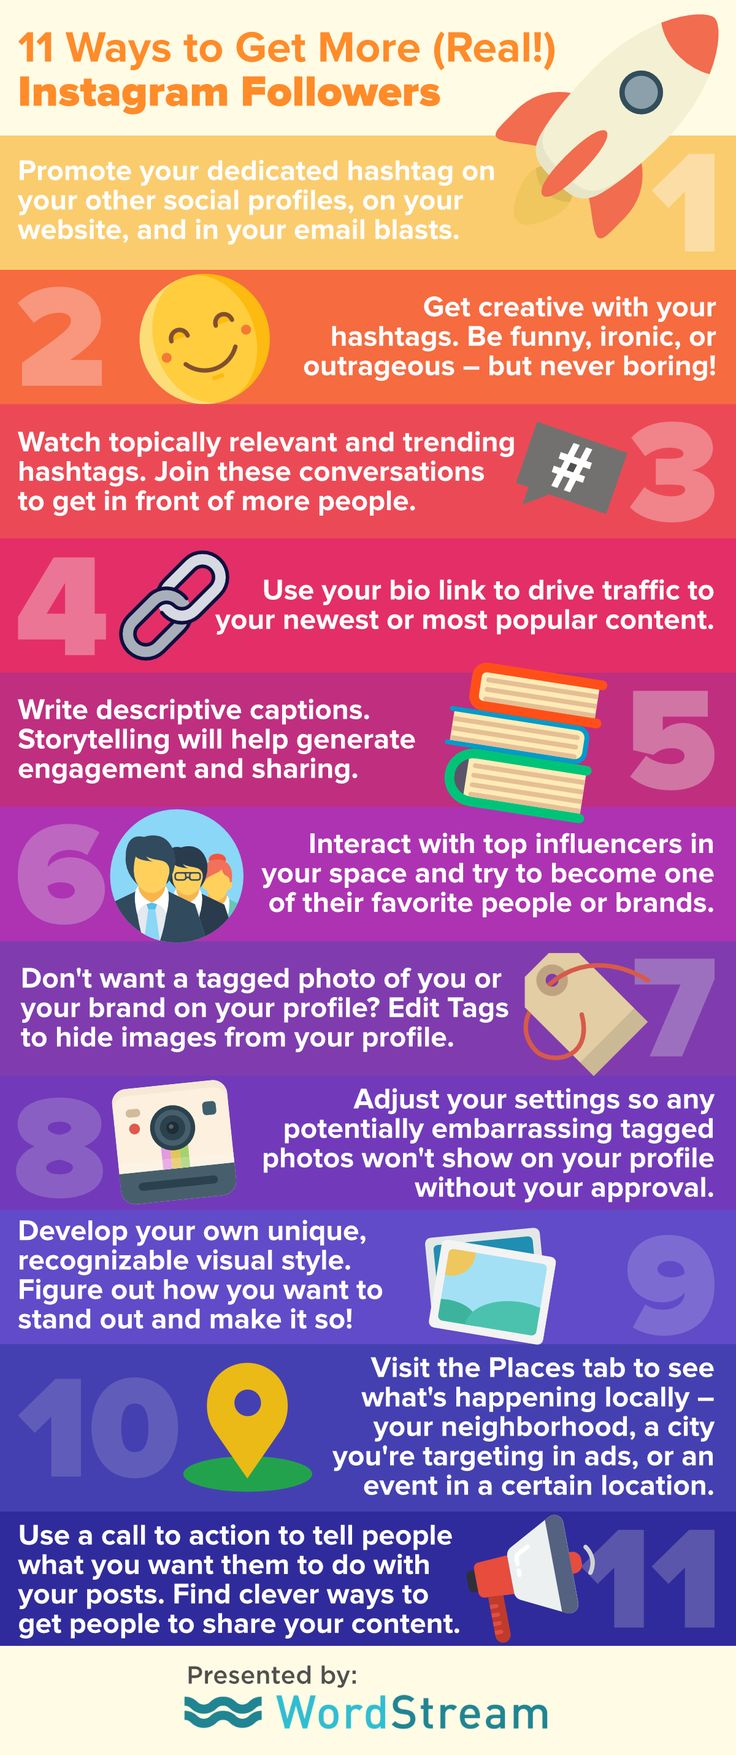 11 ways to get more followers on instagram